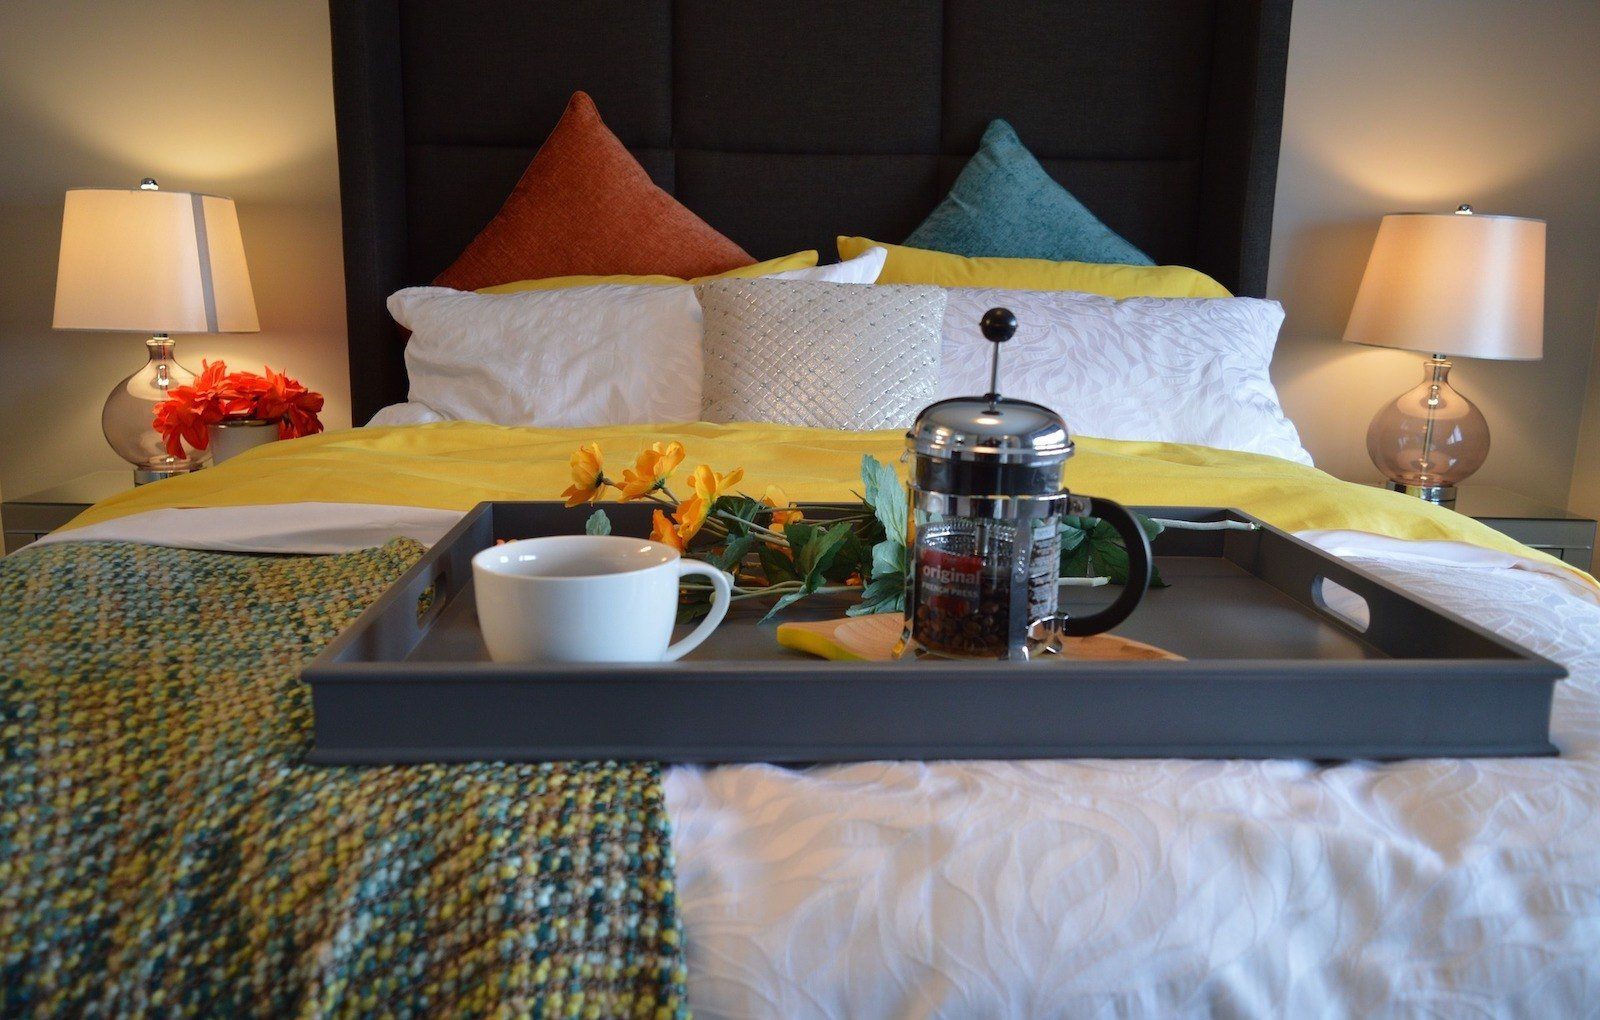 bed with accent pillows and breakfast tray with coffee